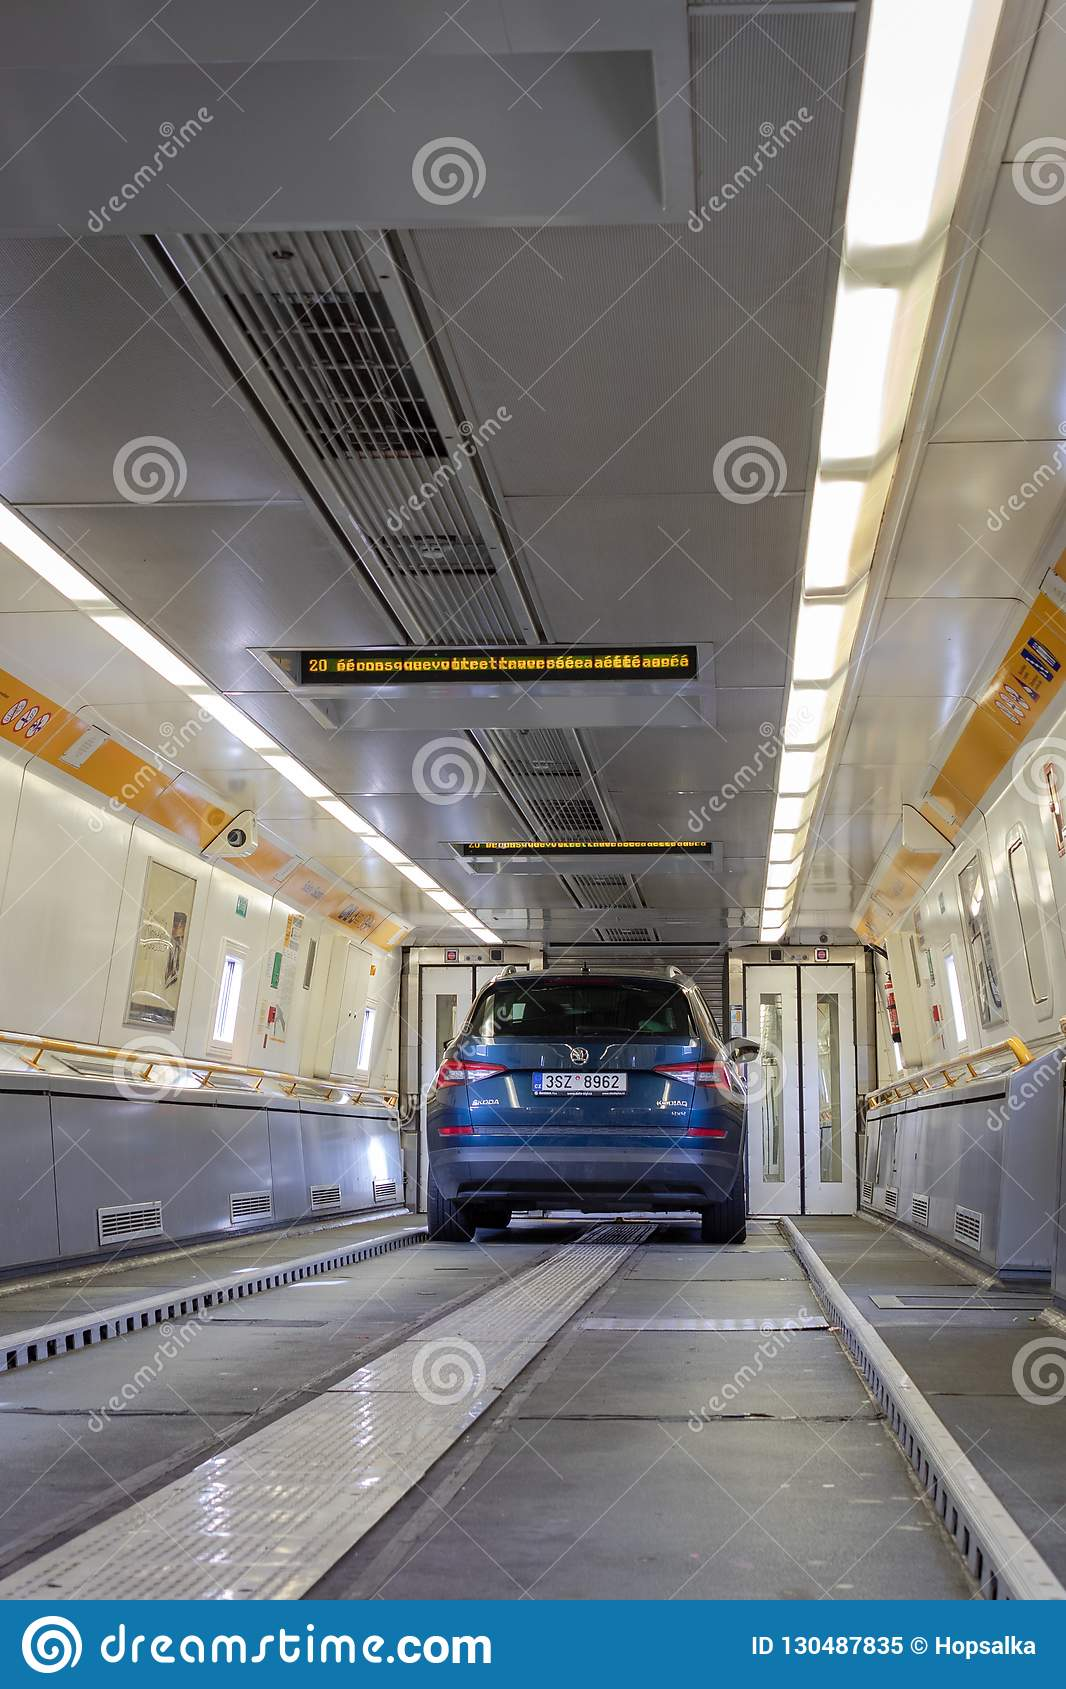 Blue Car On Board Of Eurotunnel Train Connecting The Uk And Fran